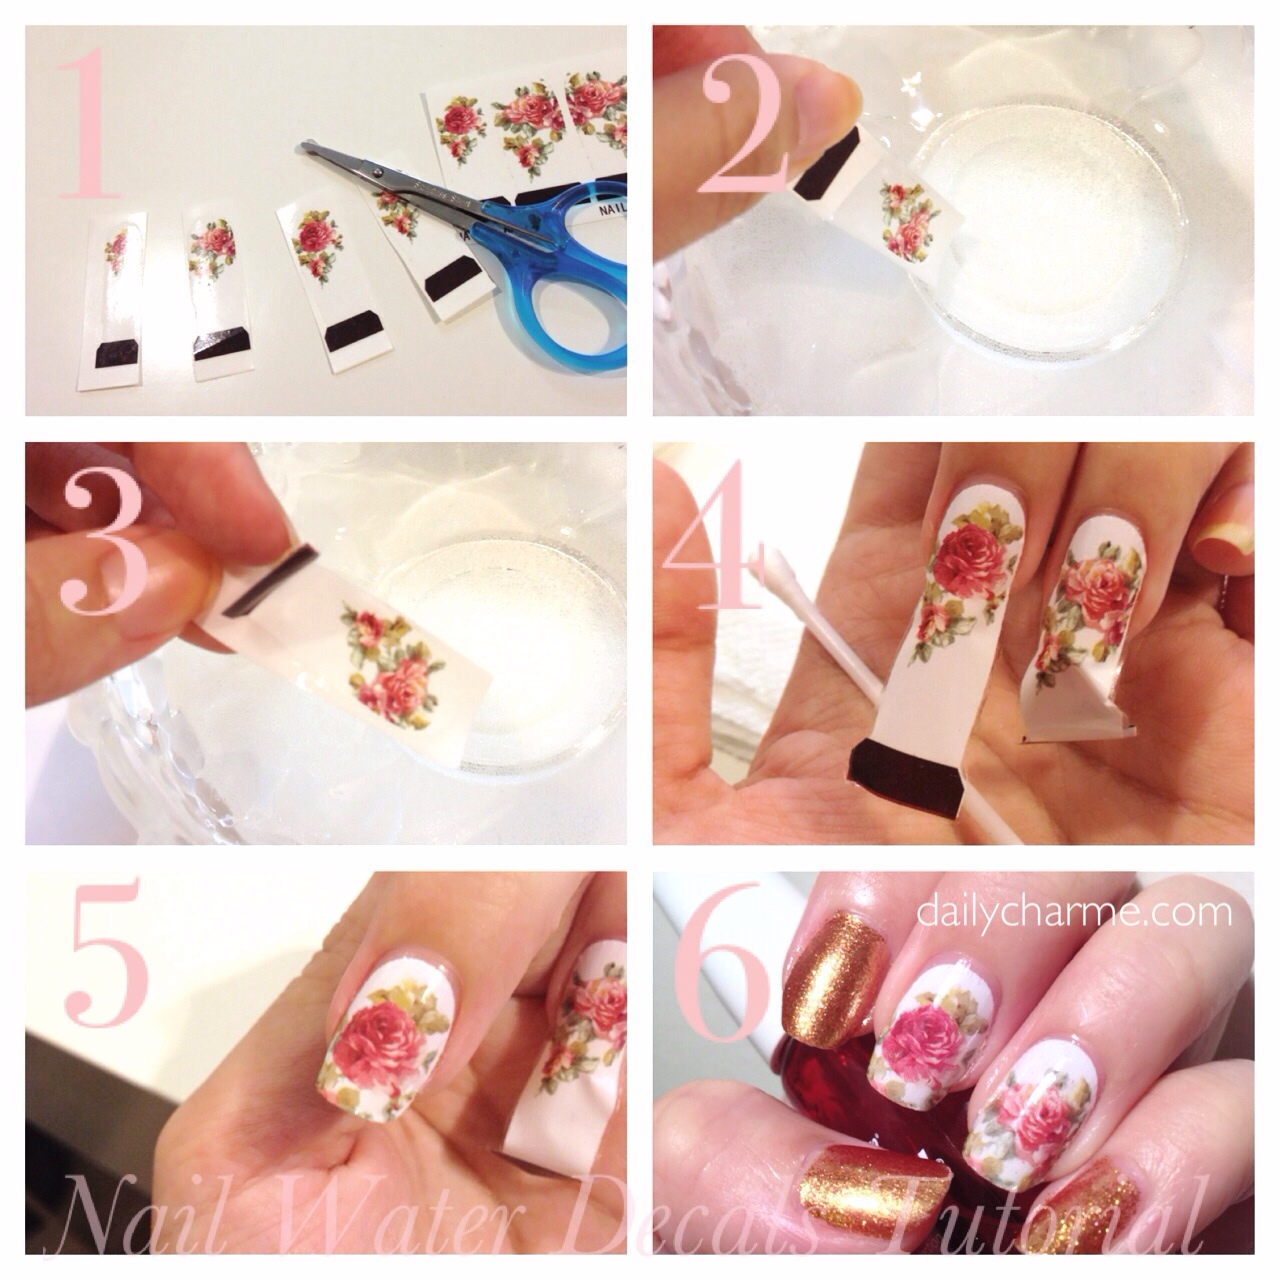 Fabulous Nails with Water Decals   daily charme